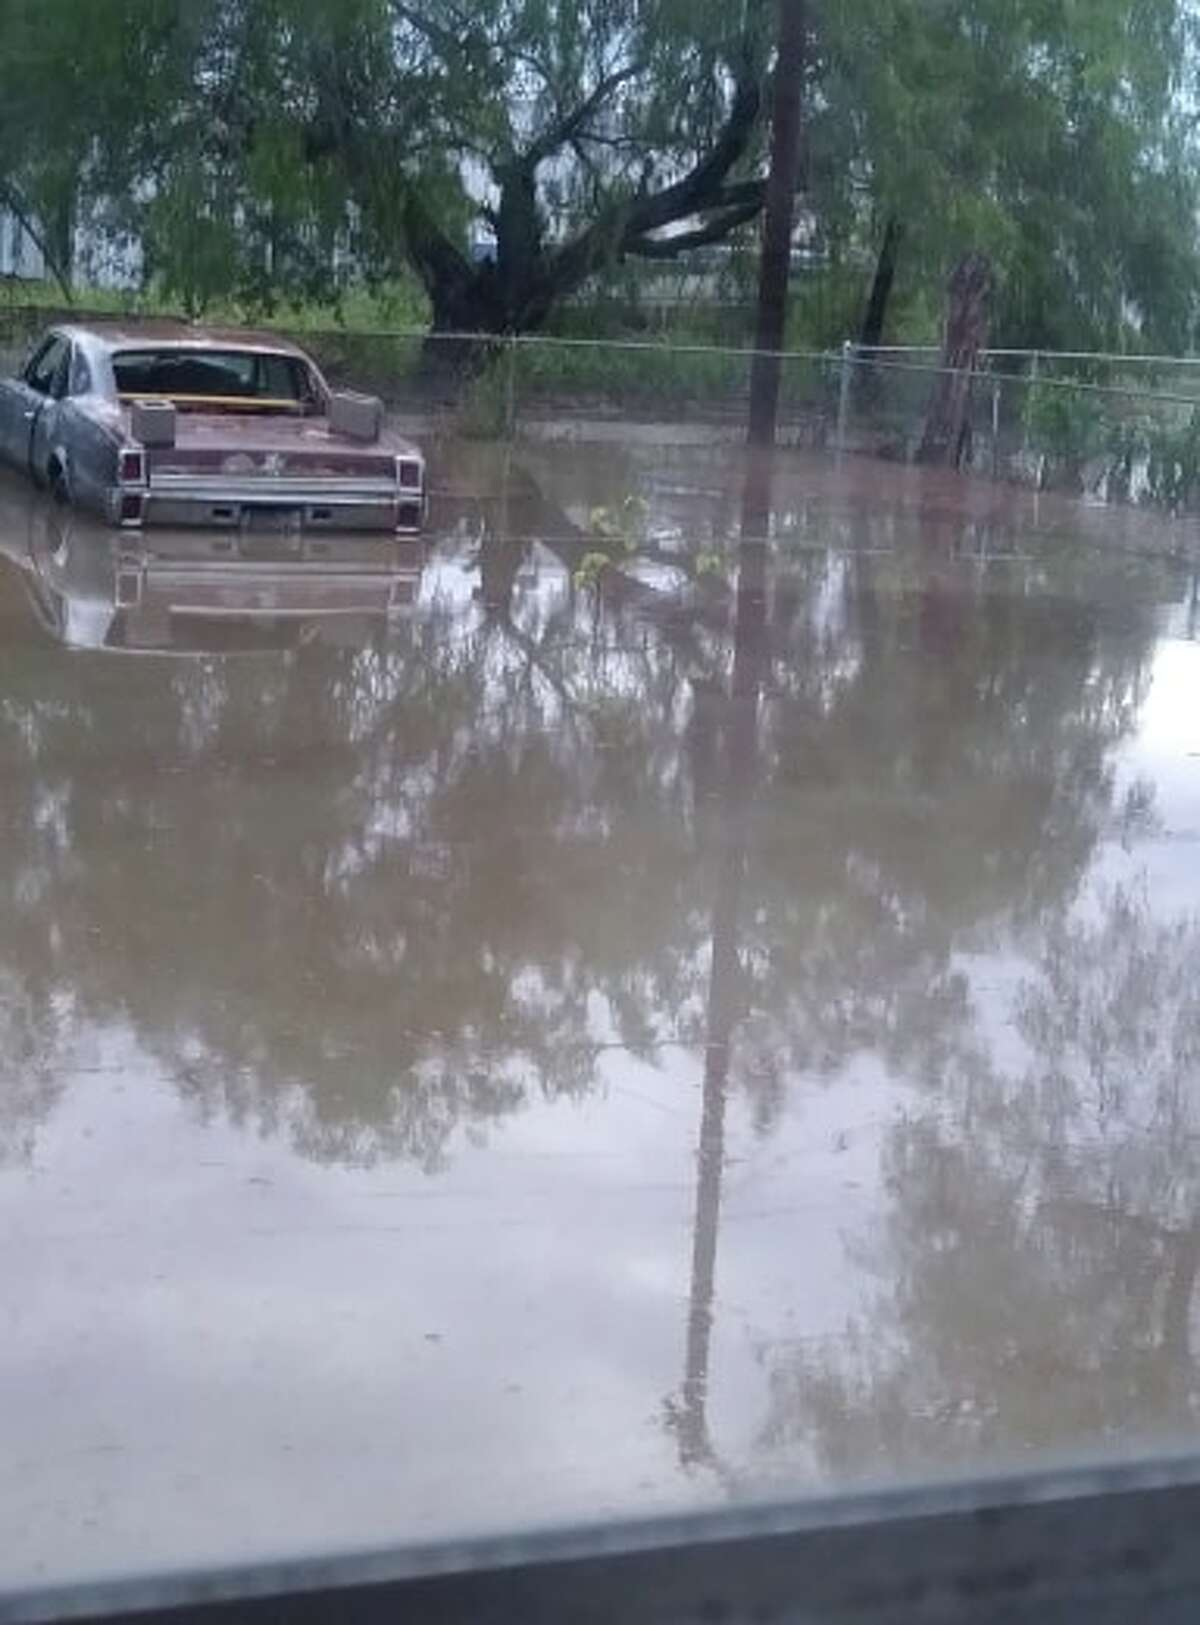 A photo of flooding in Raymondville, Texas after storms hit the area Monday night.